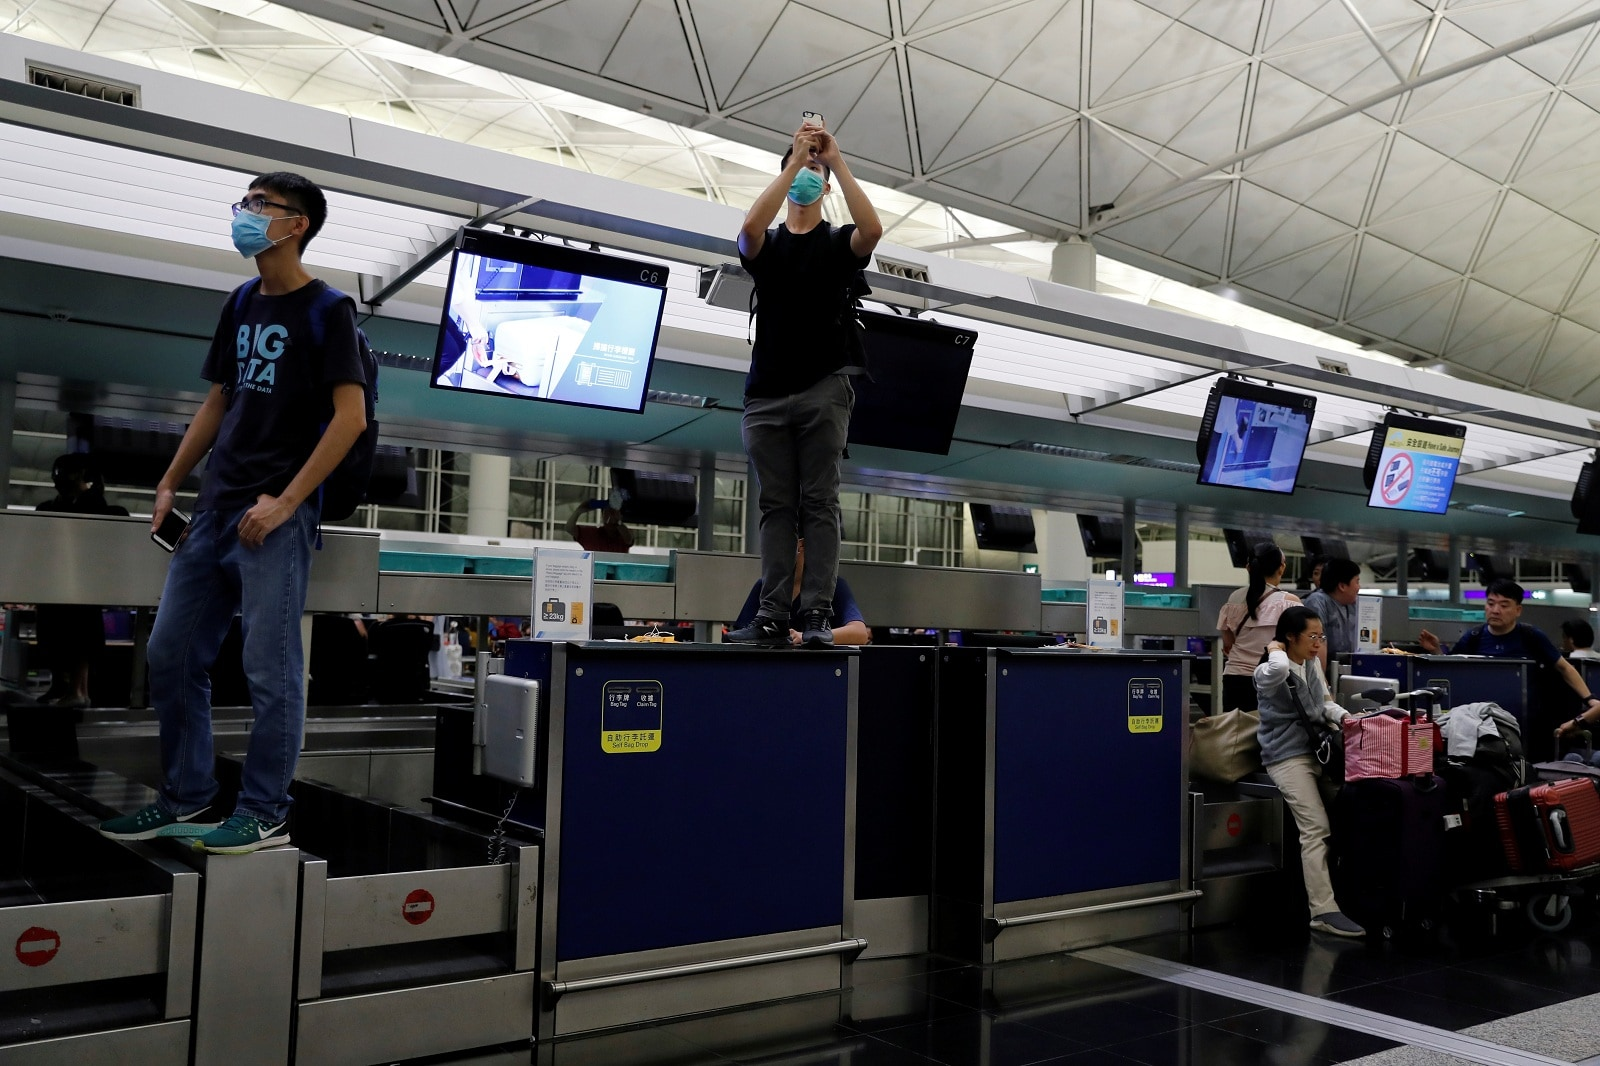 Anti-Extradition bill protesters are seen on the check-in counter during a mass demonstration at the Hong Kong international airport, in Hong Kong, China, August 13, 2019. REUTERS/Tyrone Siu